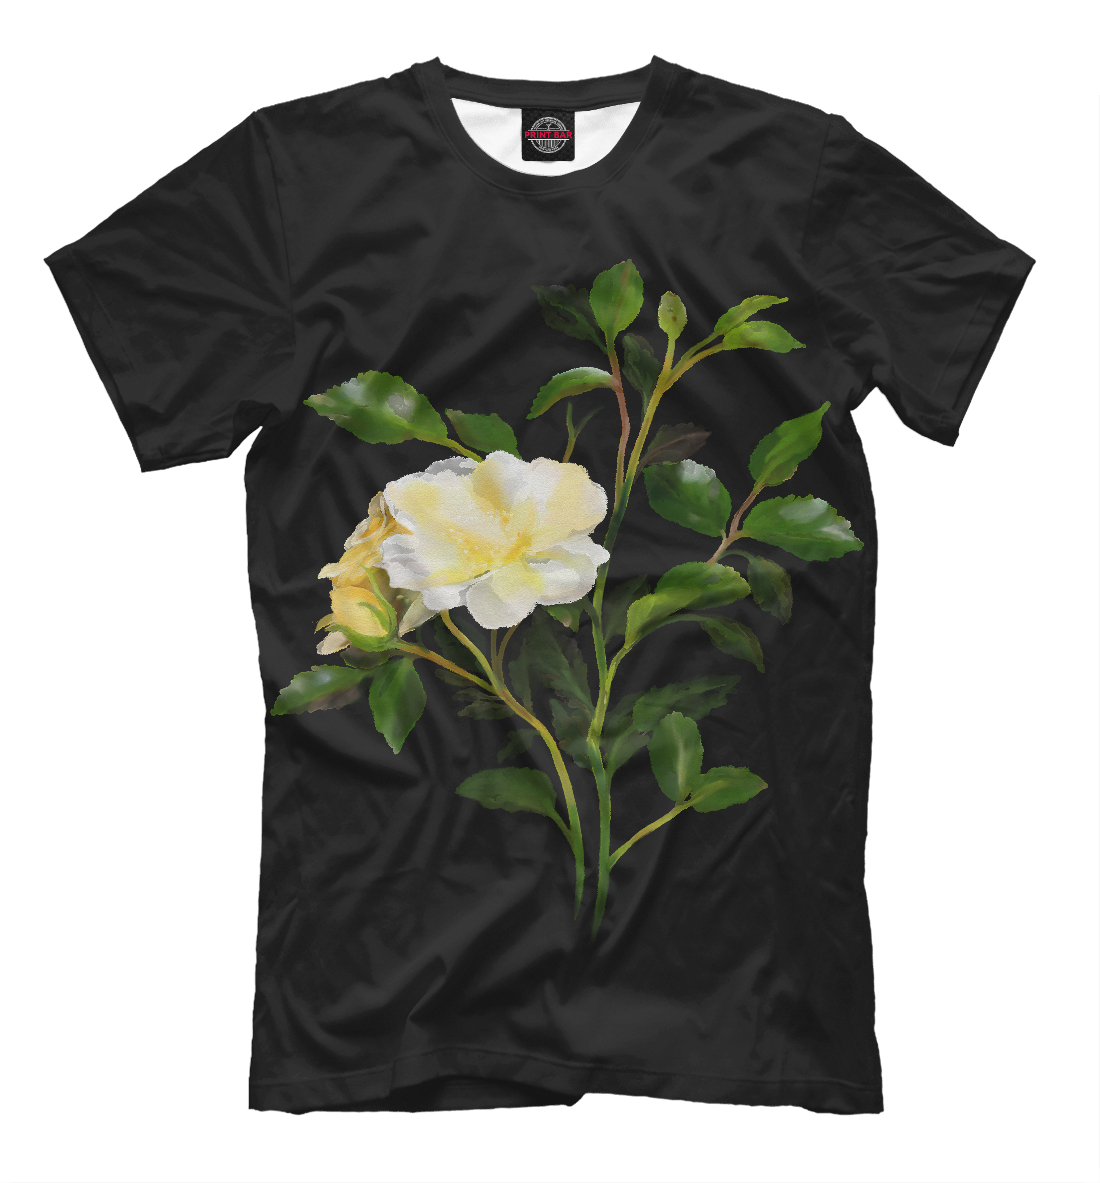 Купить Yellow Watercolor Rose, Printbar, Футболки, CVE-564352-fut-2